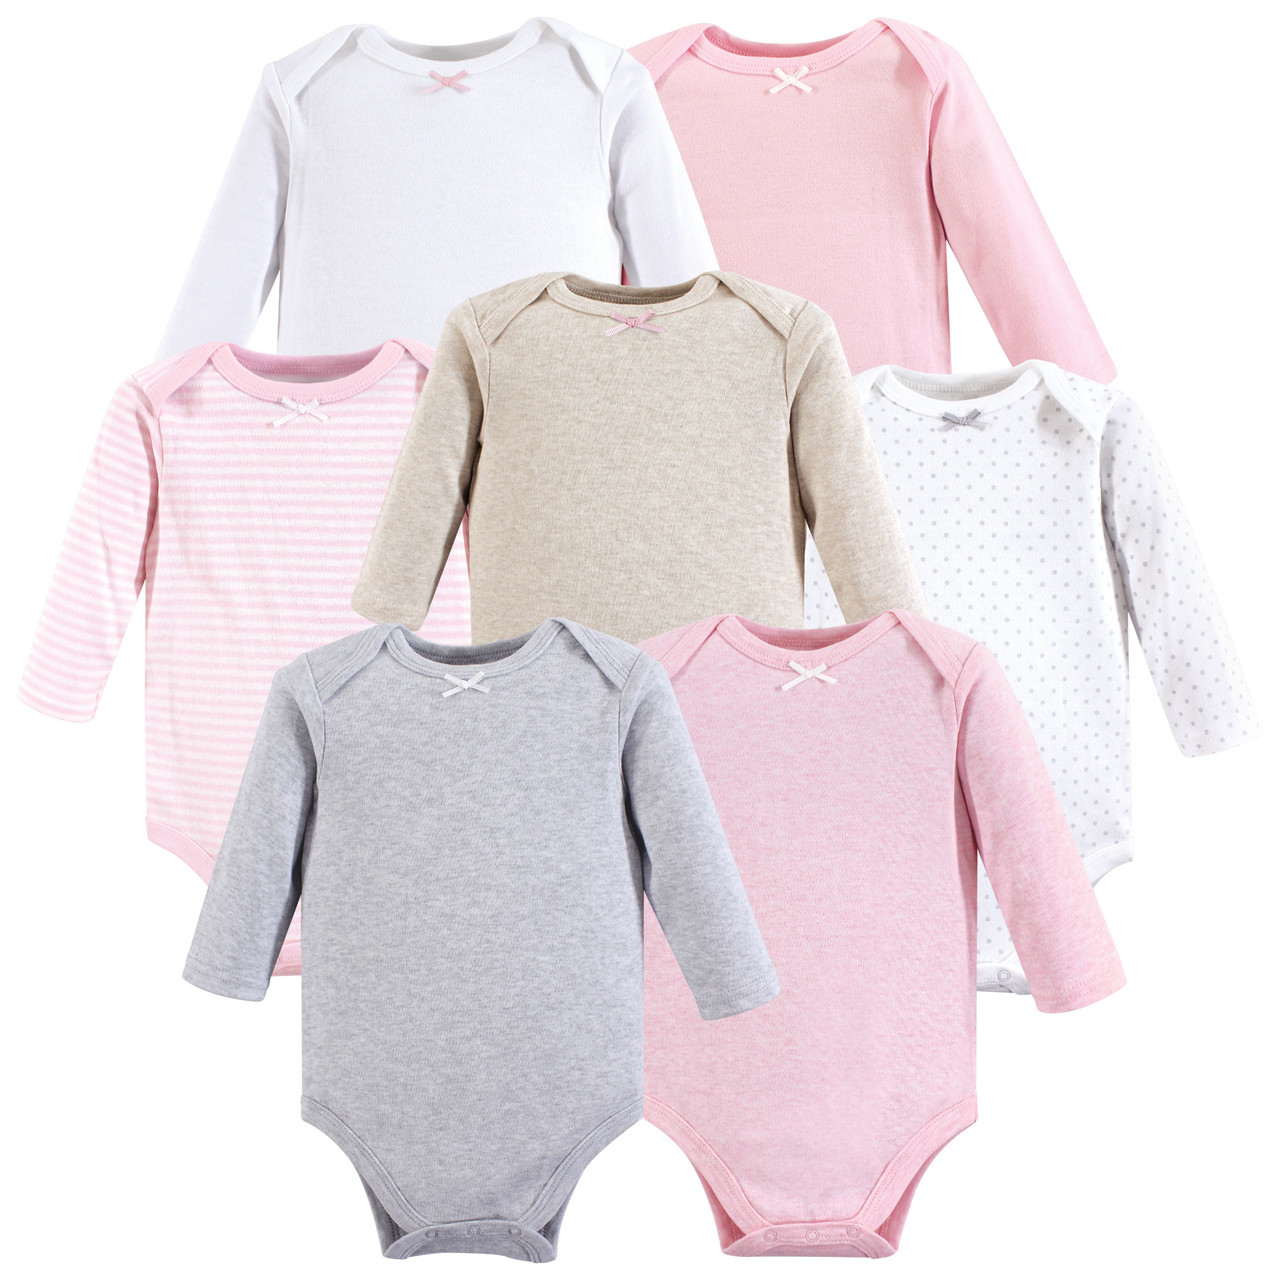 Heather Gray Hudson Baby Boy and Girl Long Sleeve Bodysuits 8-Pack